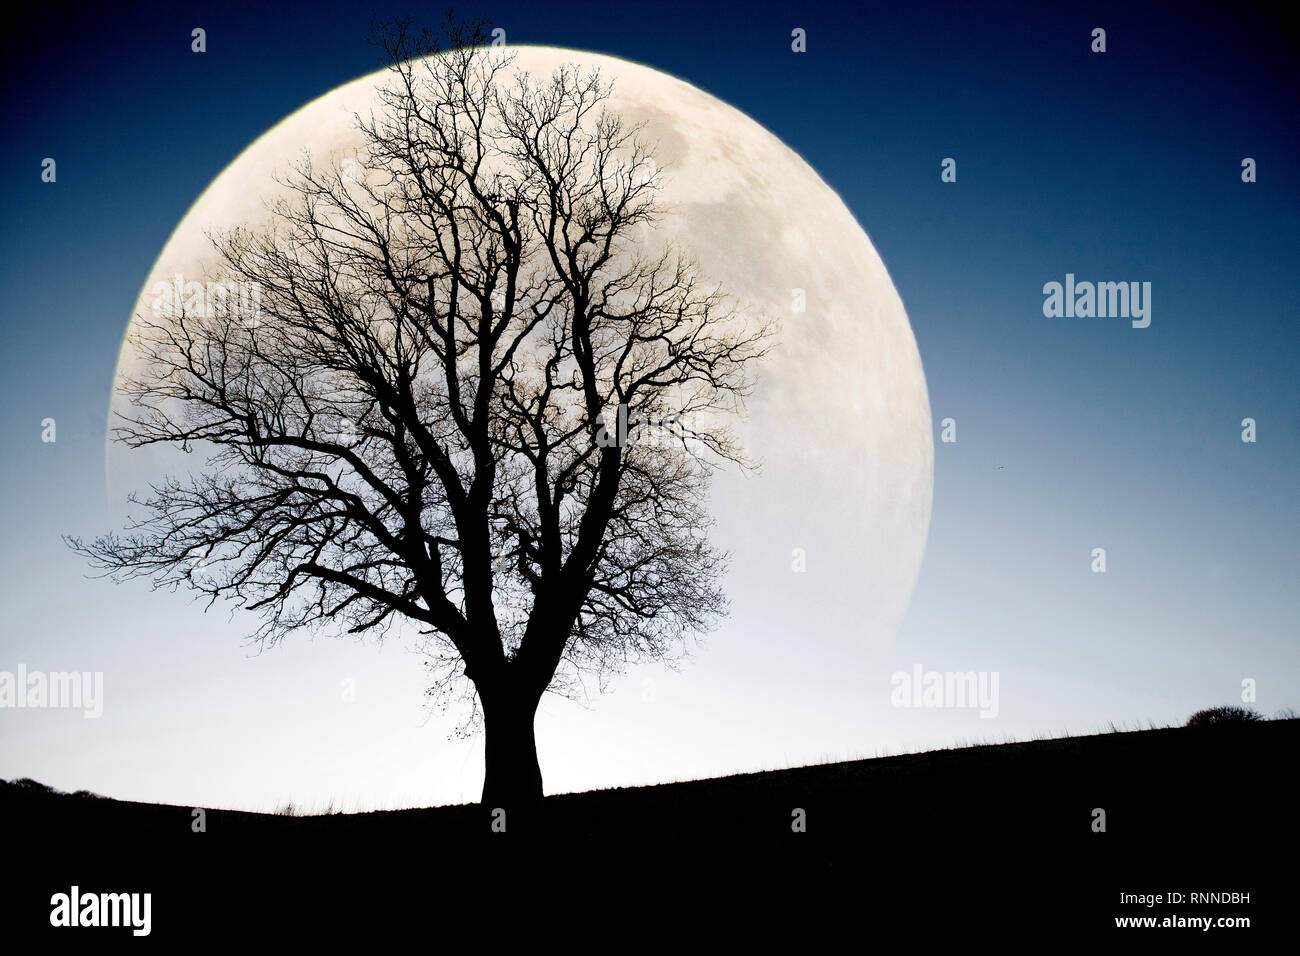 Winter, Tree, Large, Moon, Silhouette, Godshill, Isle of Wight, England, UK, - Stock Image